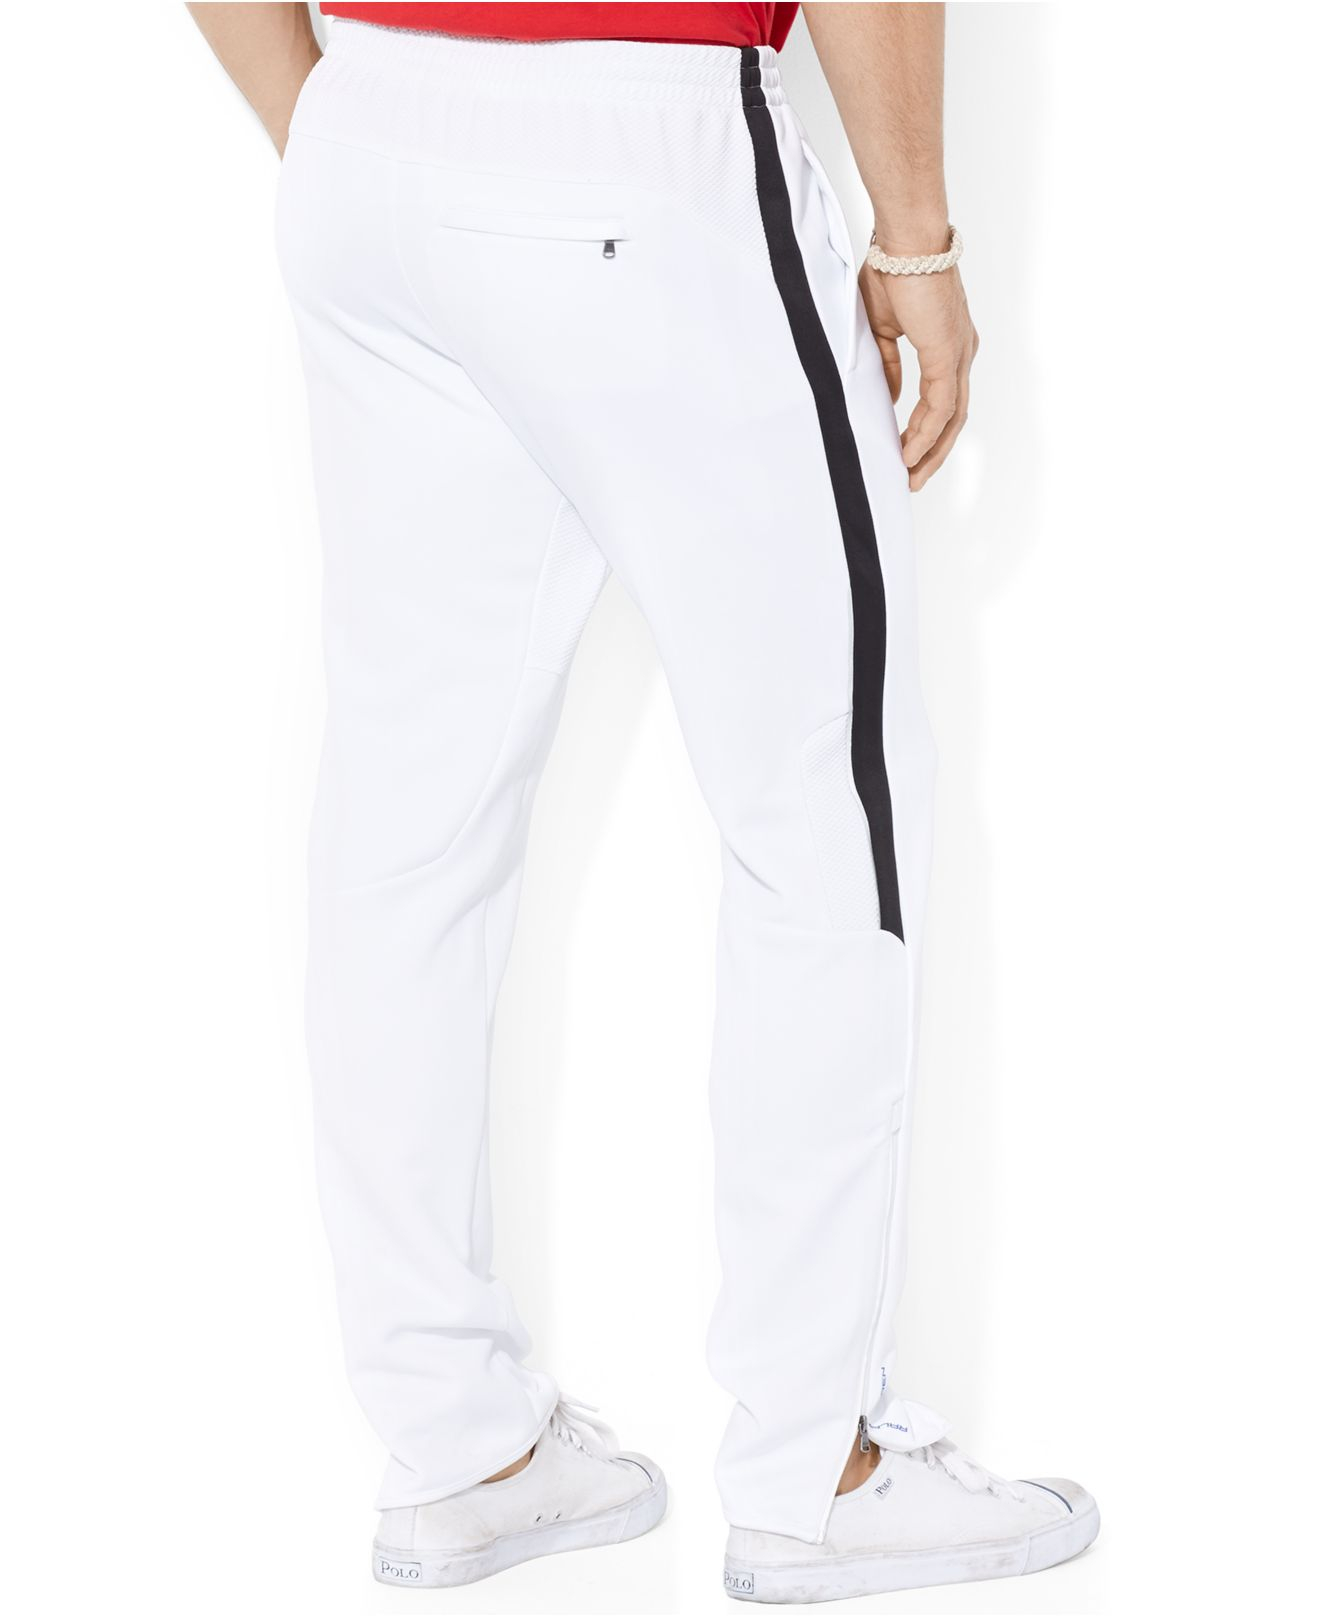 Polo ralph lauren Performance Pique Track Pants in White for Men ...